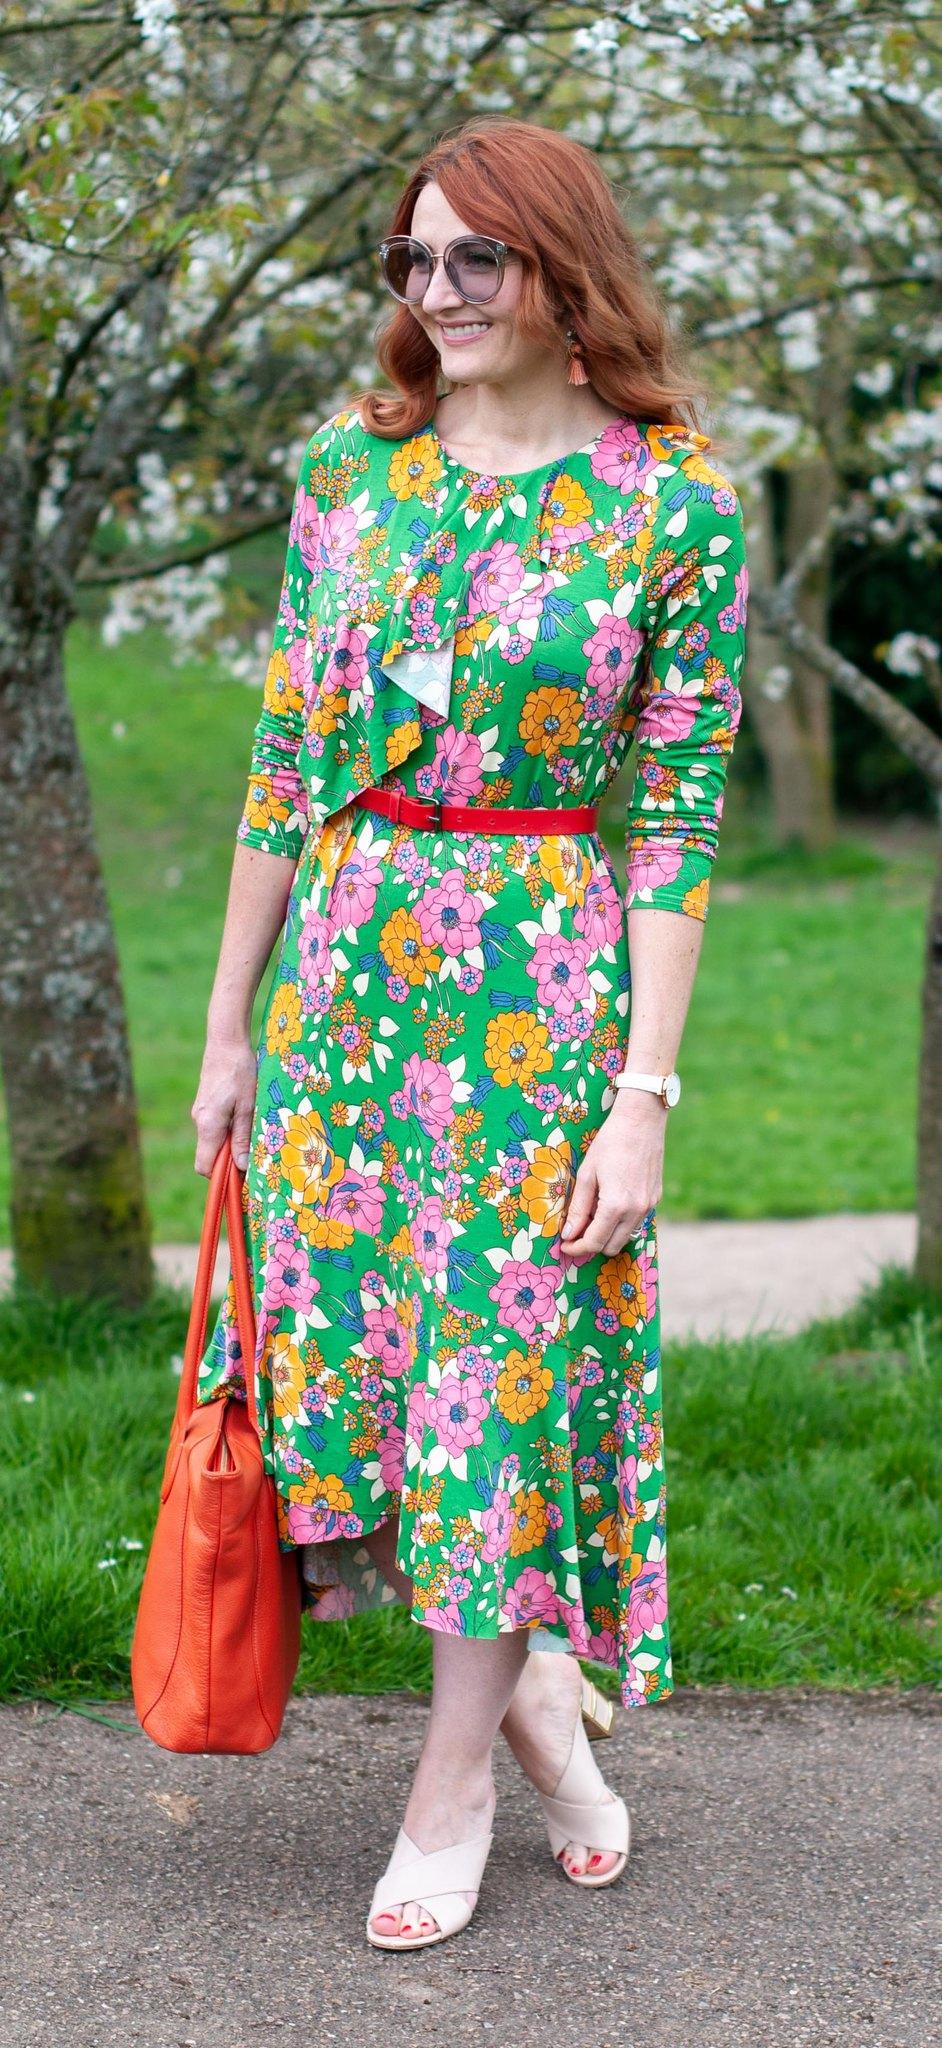 Wearing a Psychedelic Florals for Spring Dress: 60 style floral midi dress with asymmetric hem \ summer style \ bright colours \ outfit of the day \ ootd | Not Dressed As Lamb, over 40 style